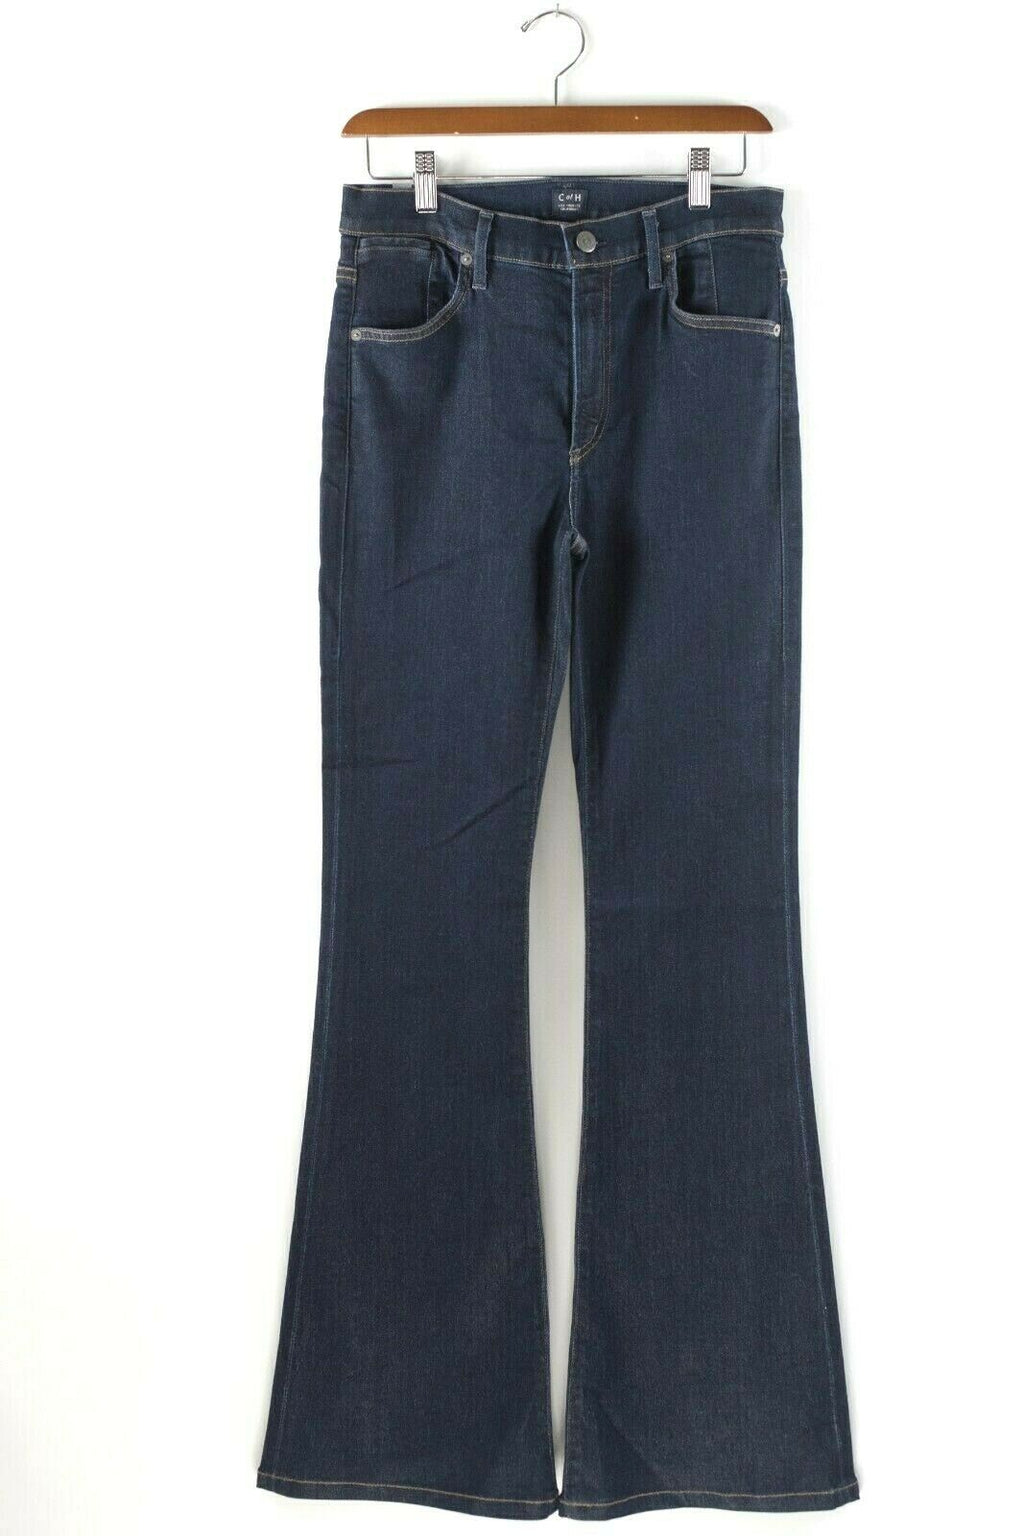 Citizens of Humanity Womens Size 28 Dark Blue Mid Rise Super Flare Wide Jeans